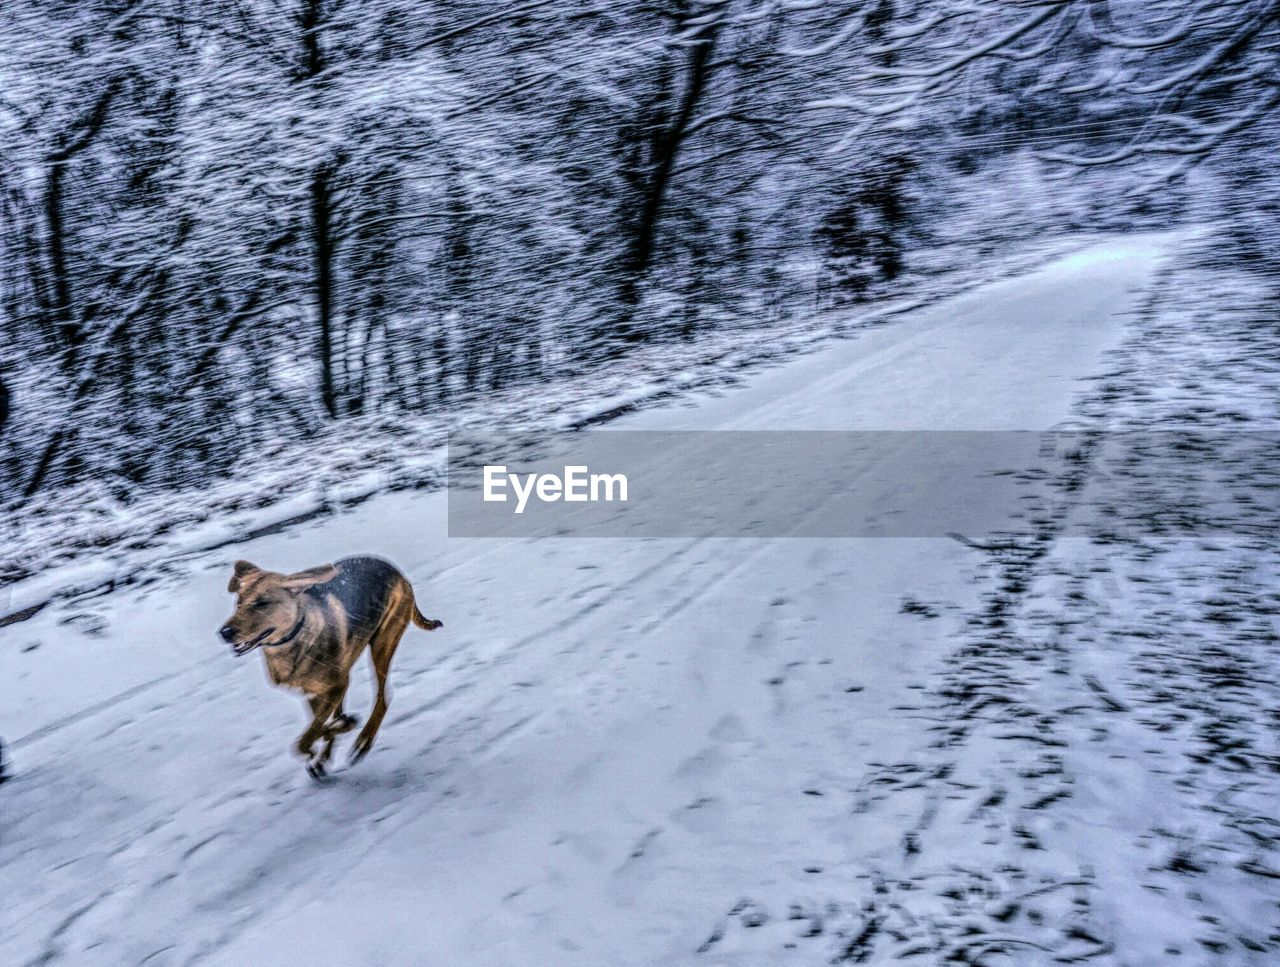 Blurred Motion Of Dog Running On Snow Covered Pathway By Trees